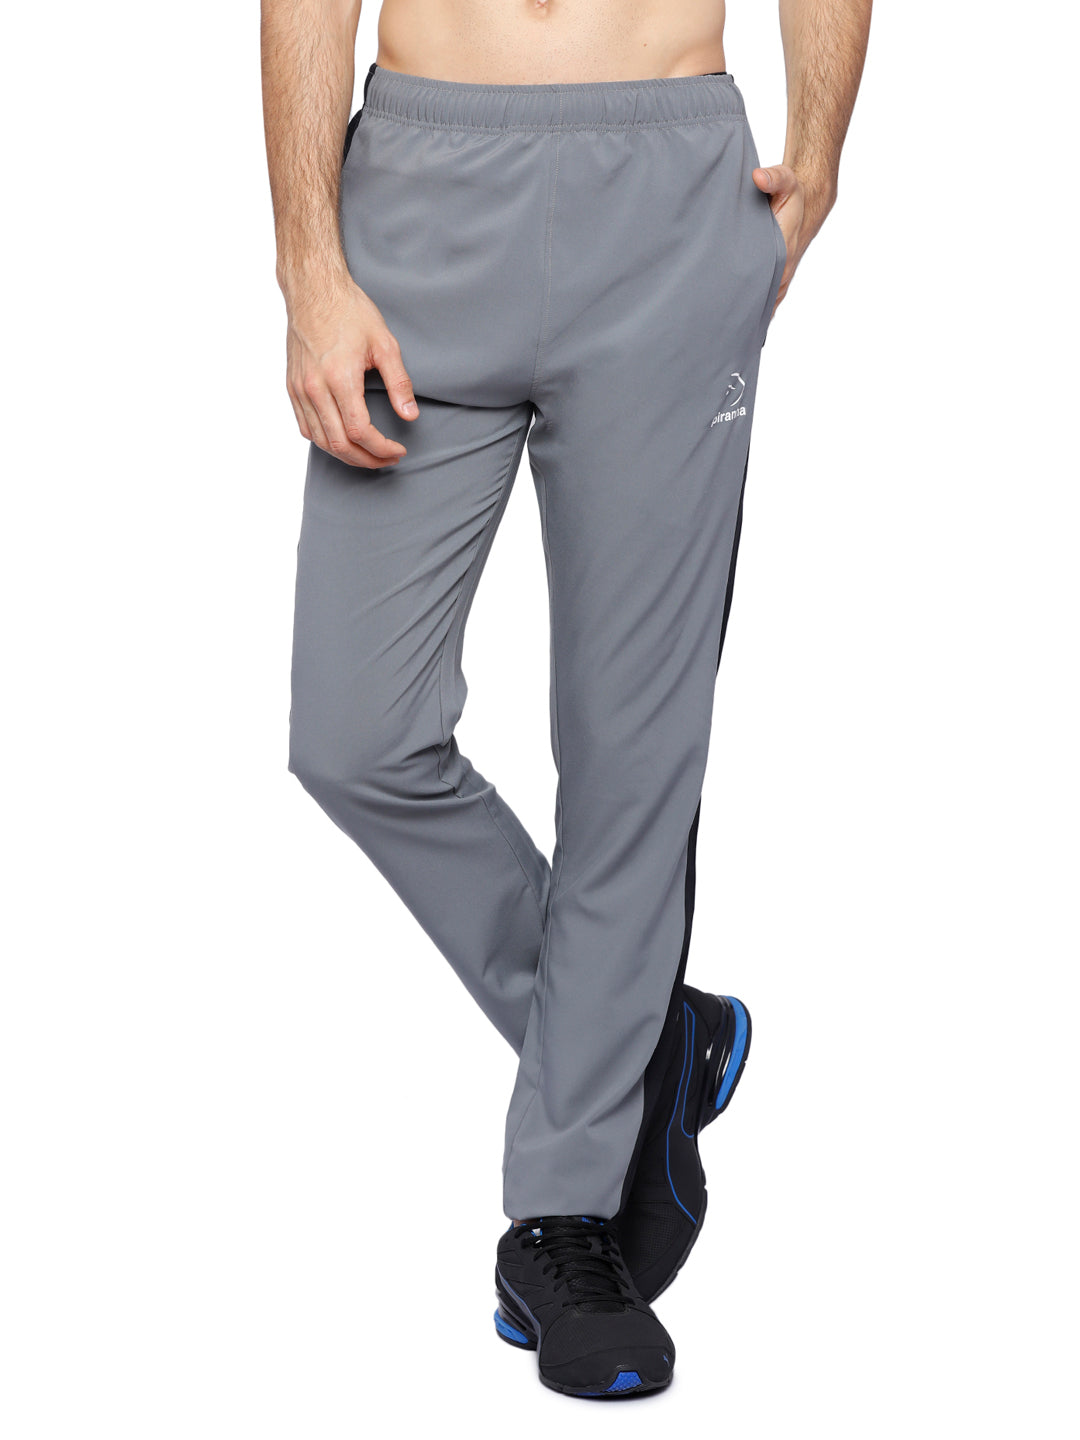 Piranha Men's Grey Woven Track Pants - MTP321